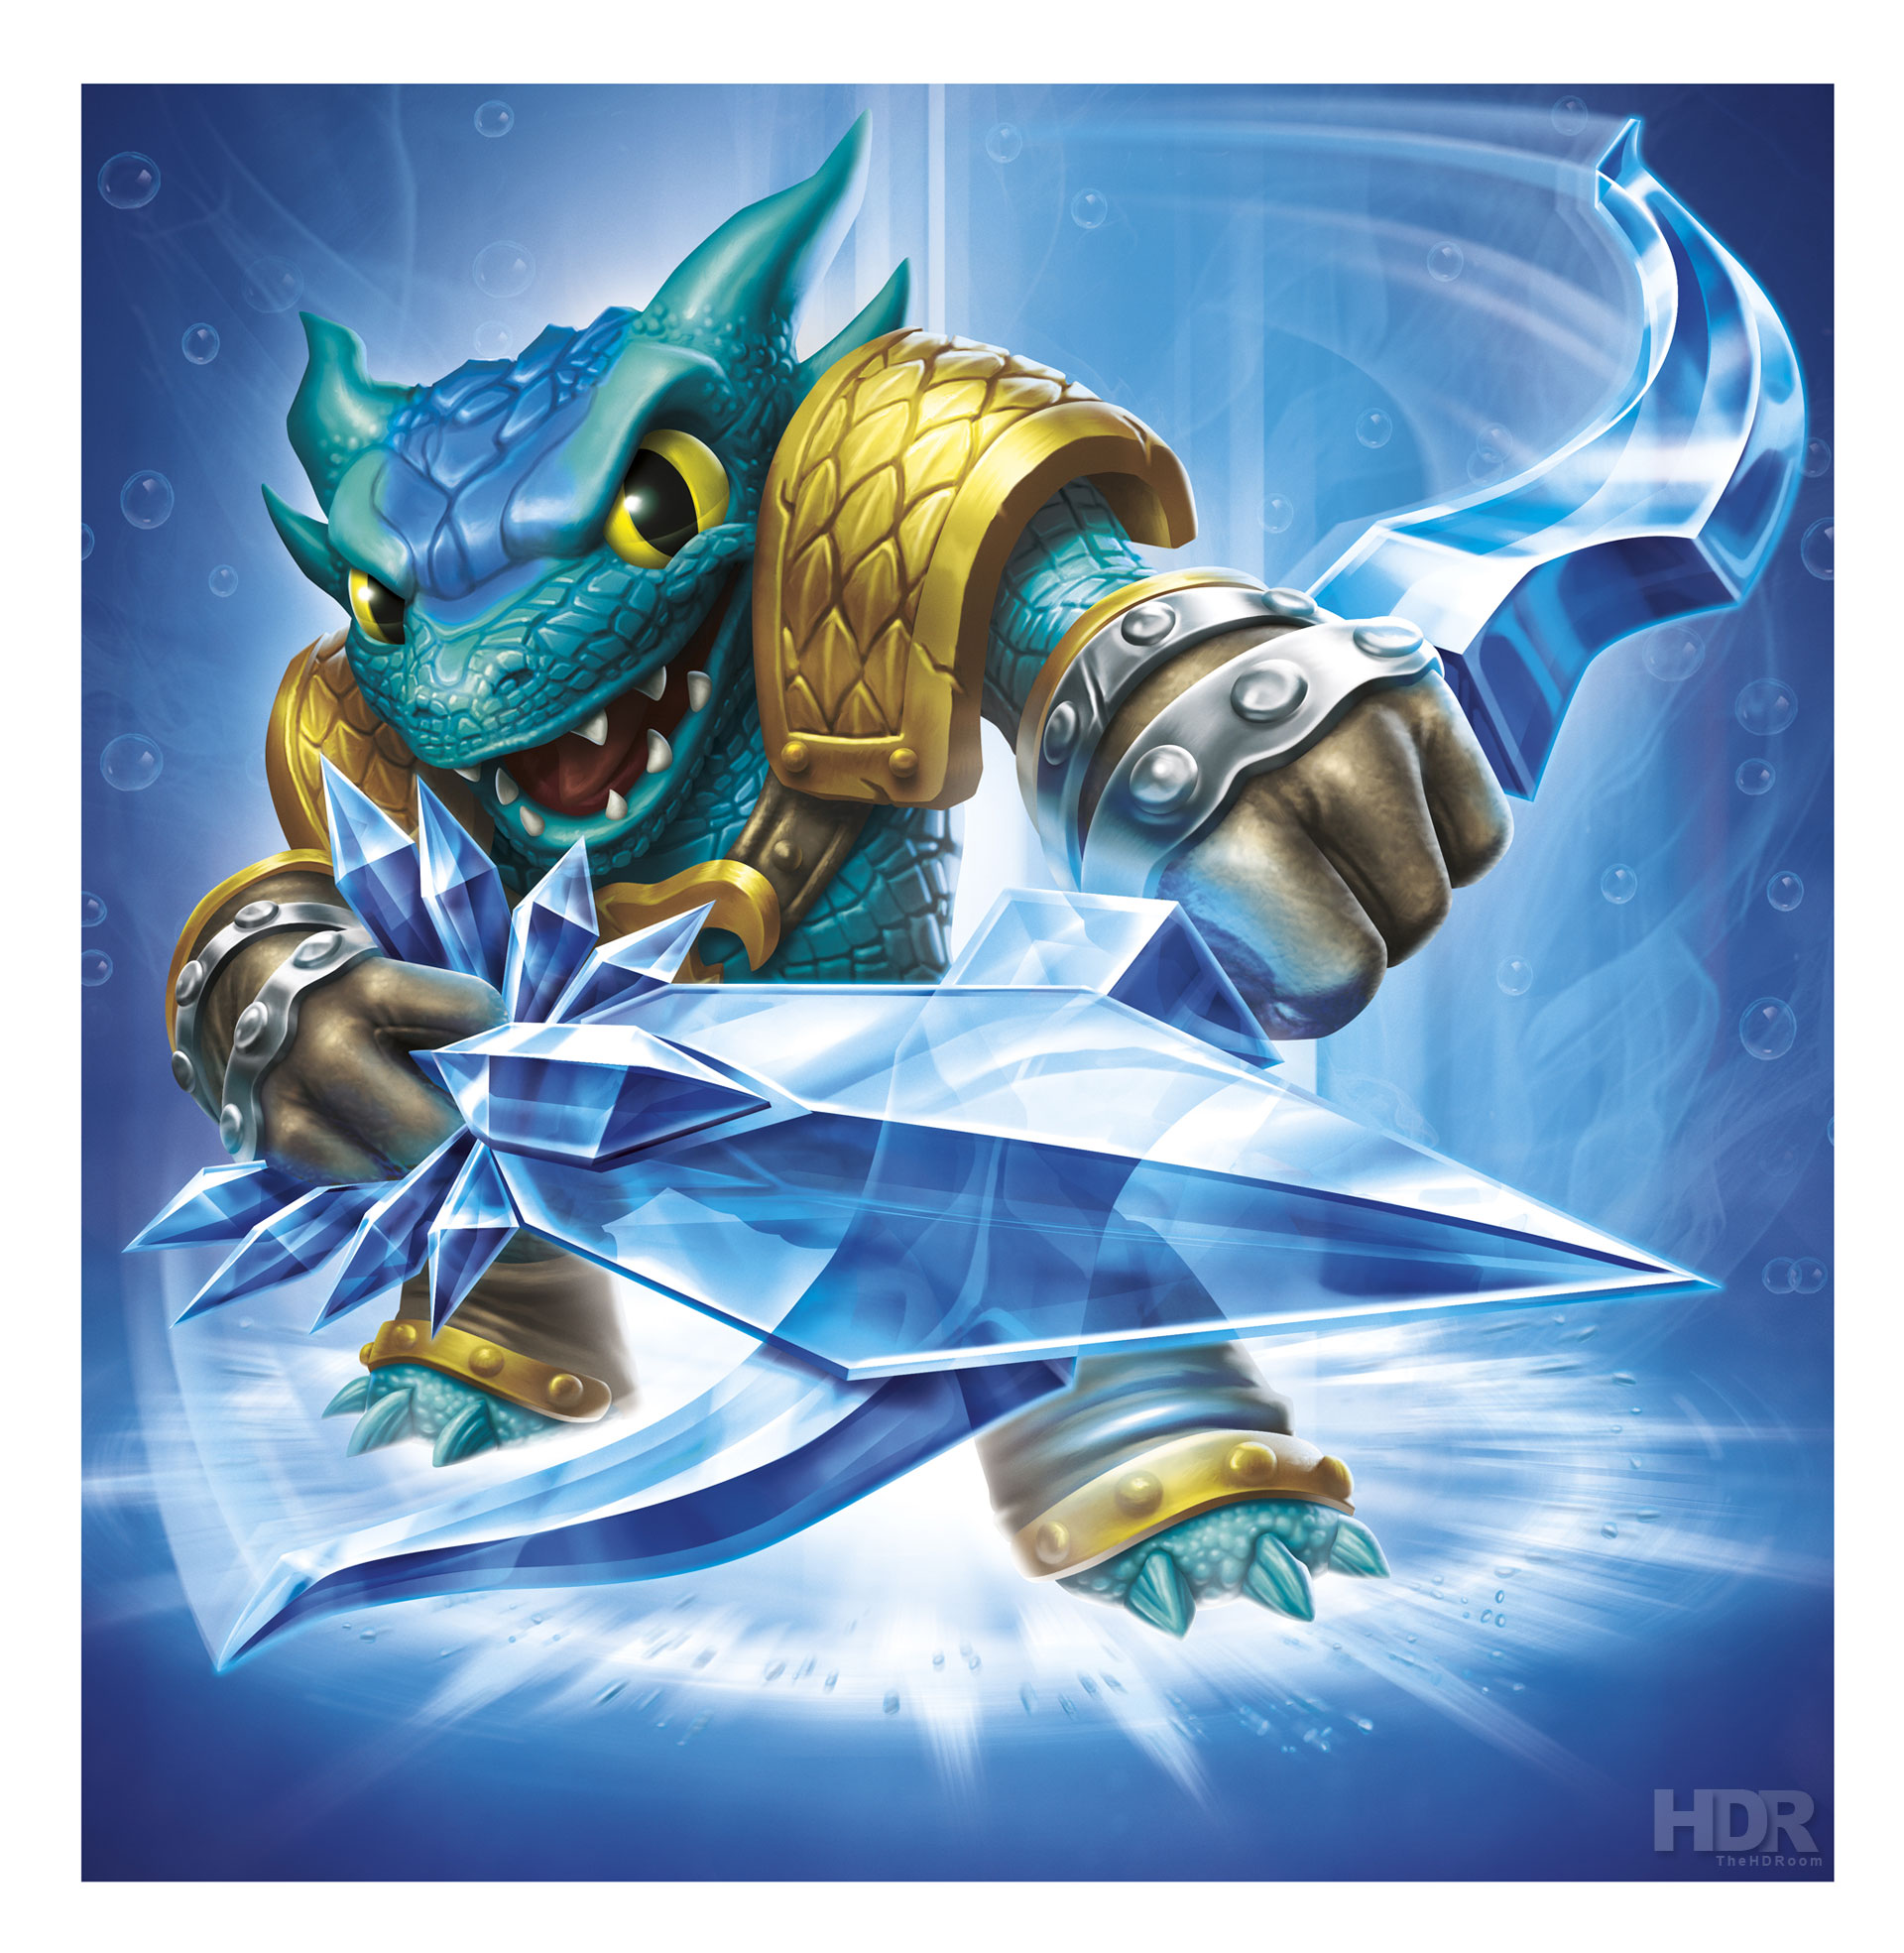 skylanders trap team wallpaper - photo #16